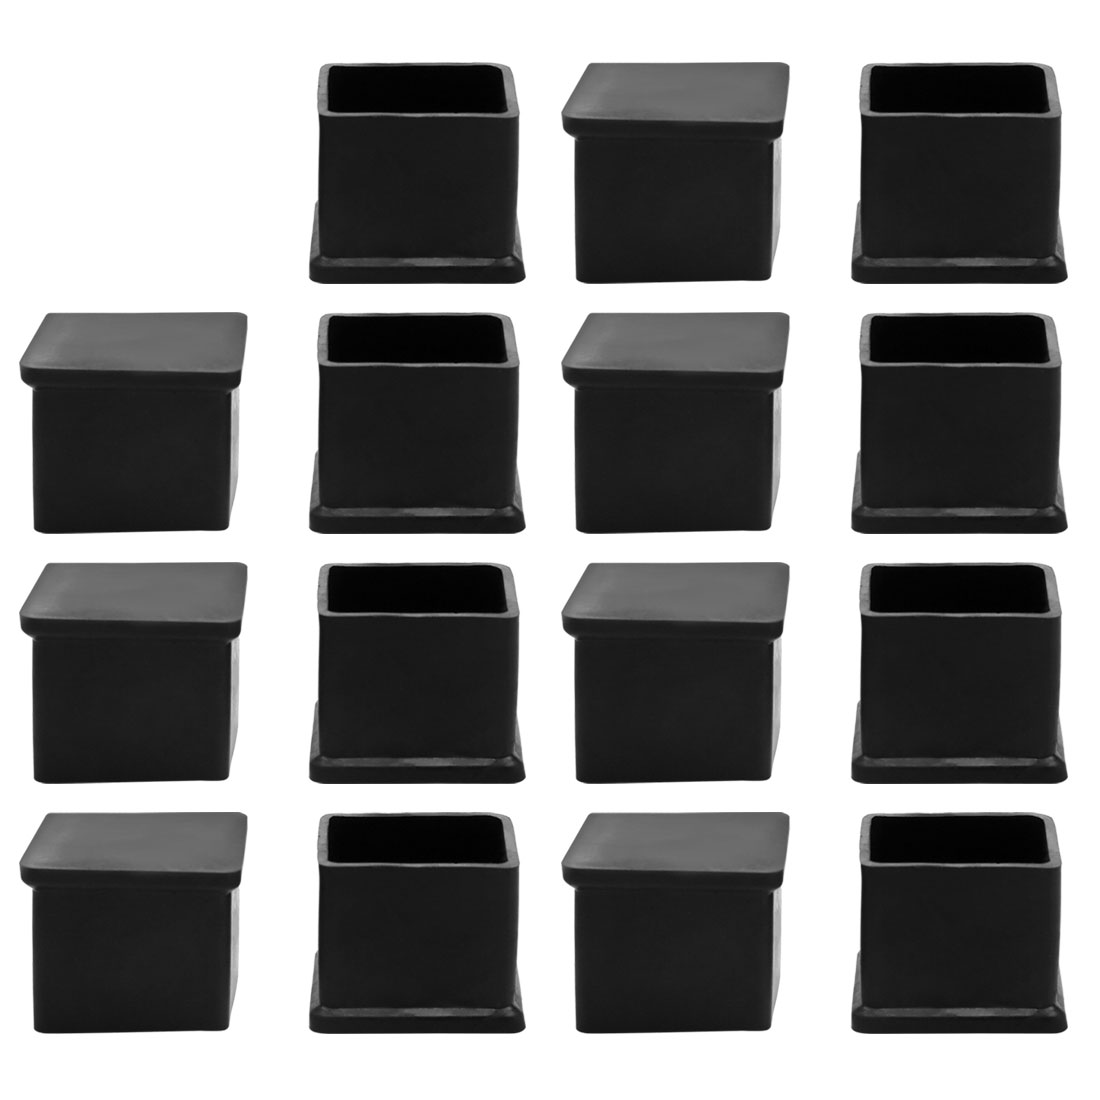 15Pcs Black Rubber 30mmx30mm Square Chair Foot Cover Protector Chair Leg Caps